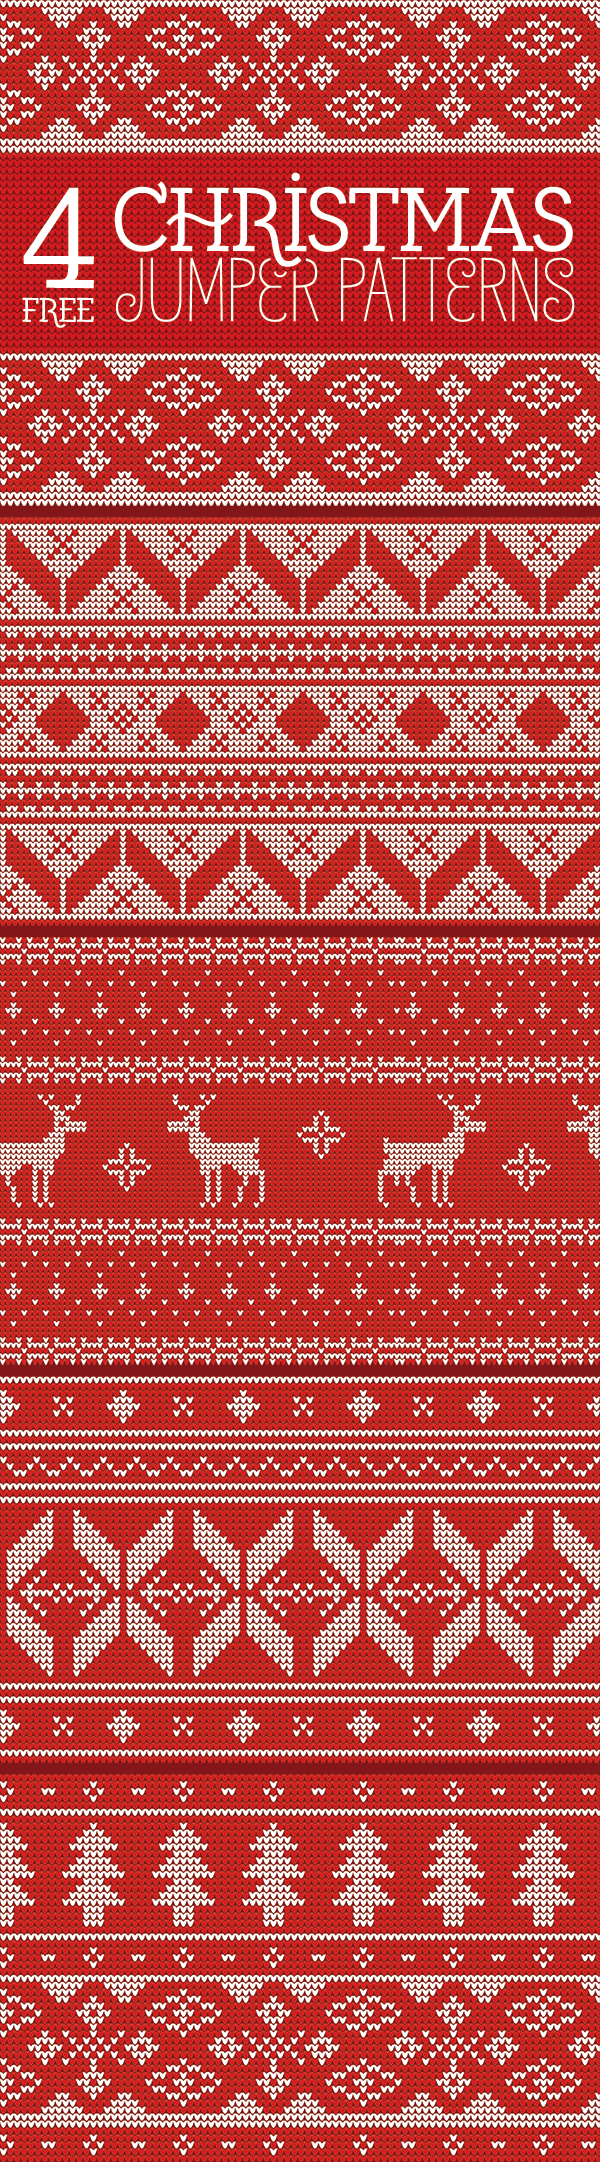 Free Christmas Knitting Patterns Jumpers : Free seamless knitted christmas jumper patterns idevie